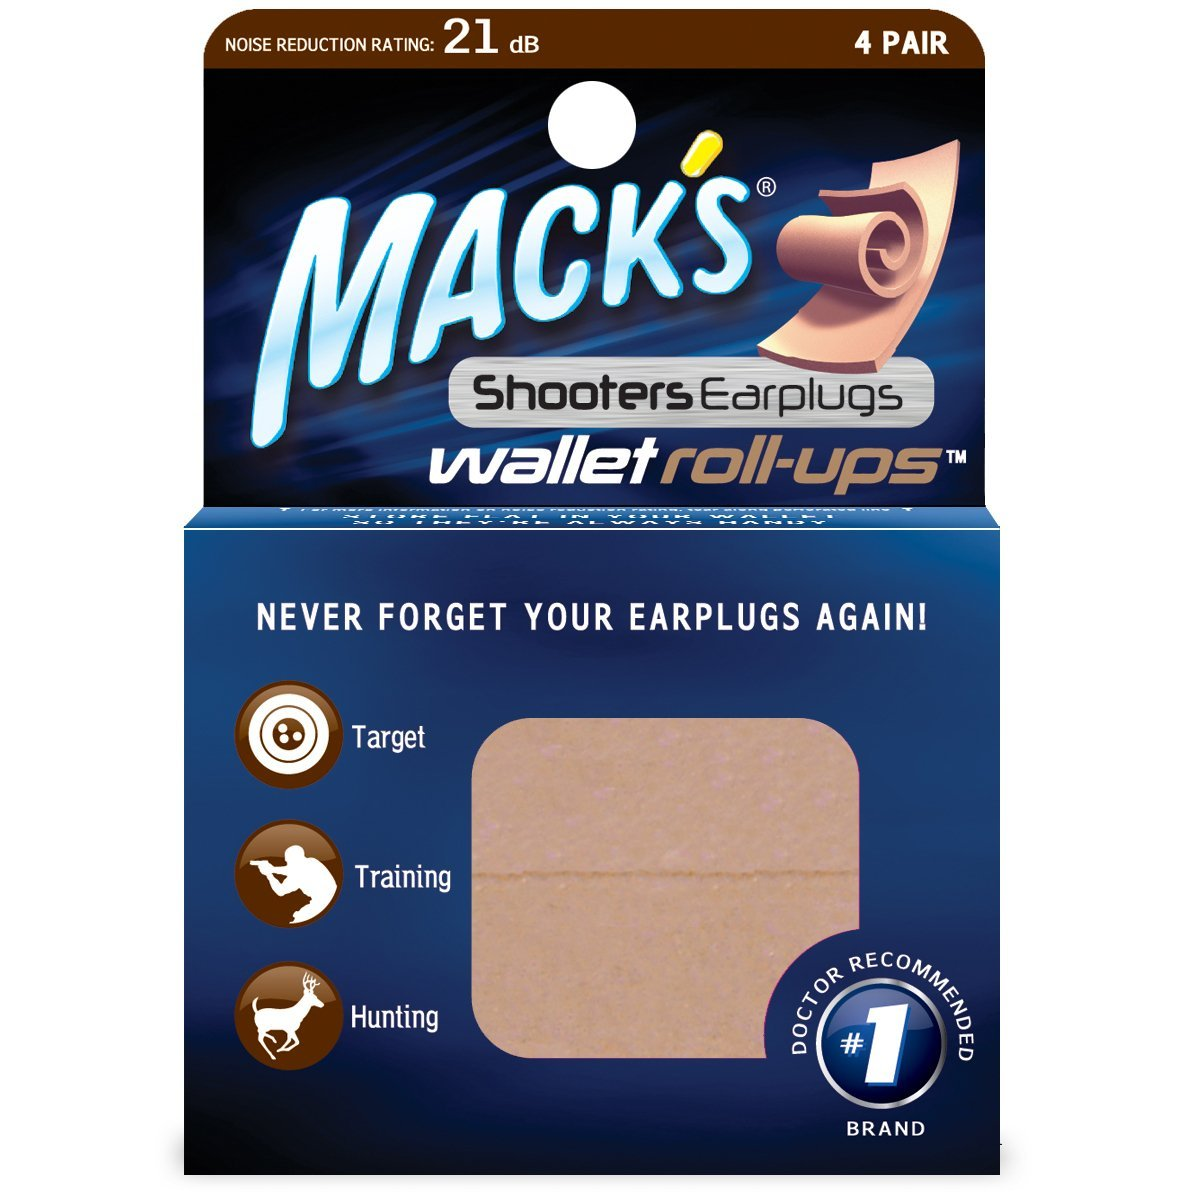 Macks Wallet Roll-Up Hearing Protection